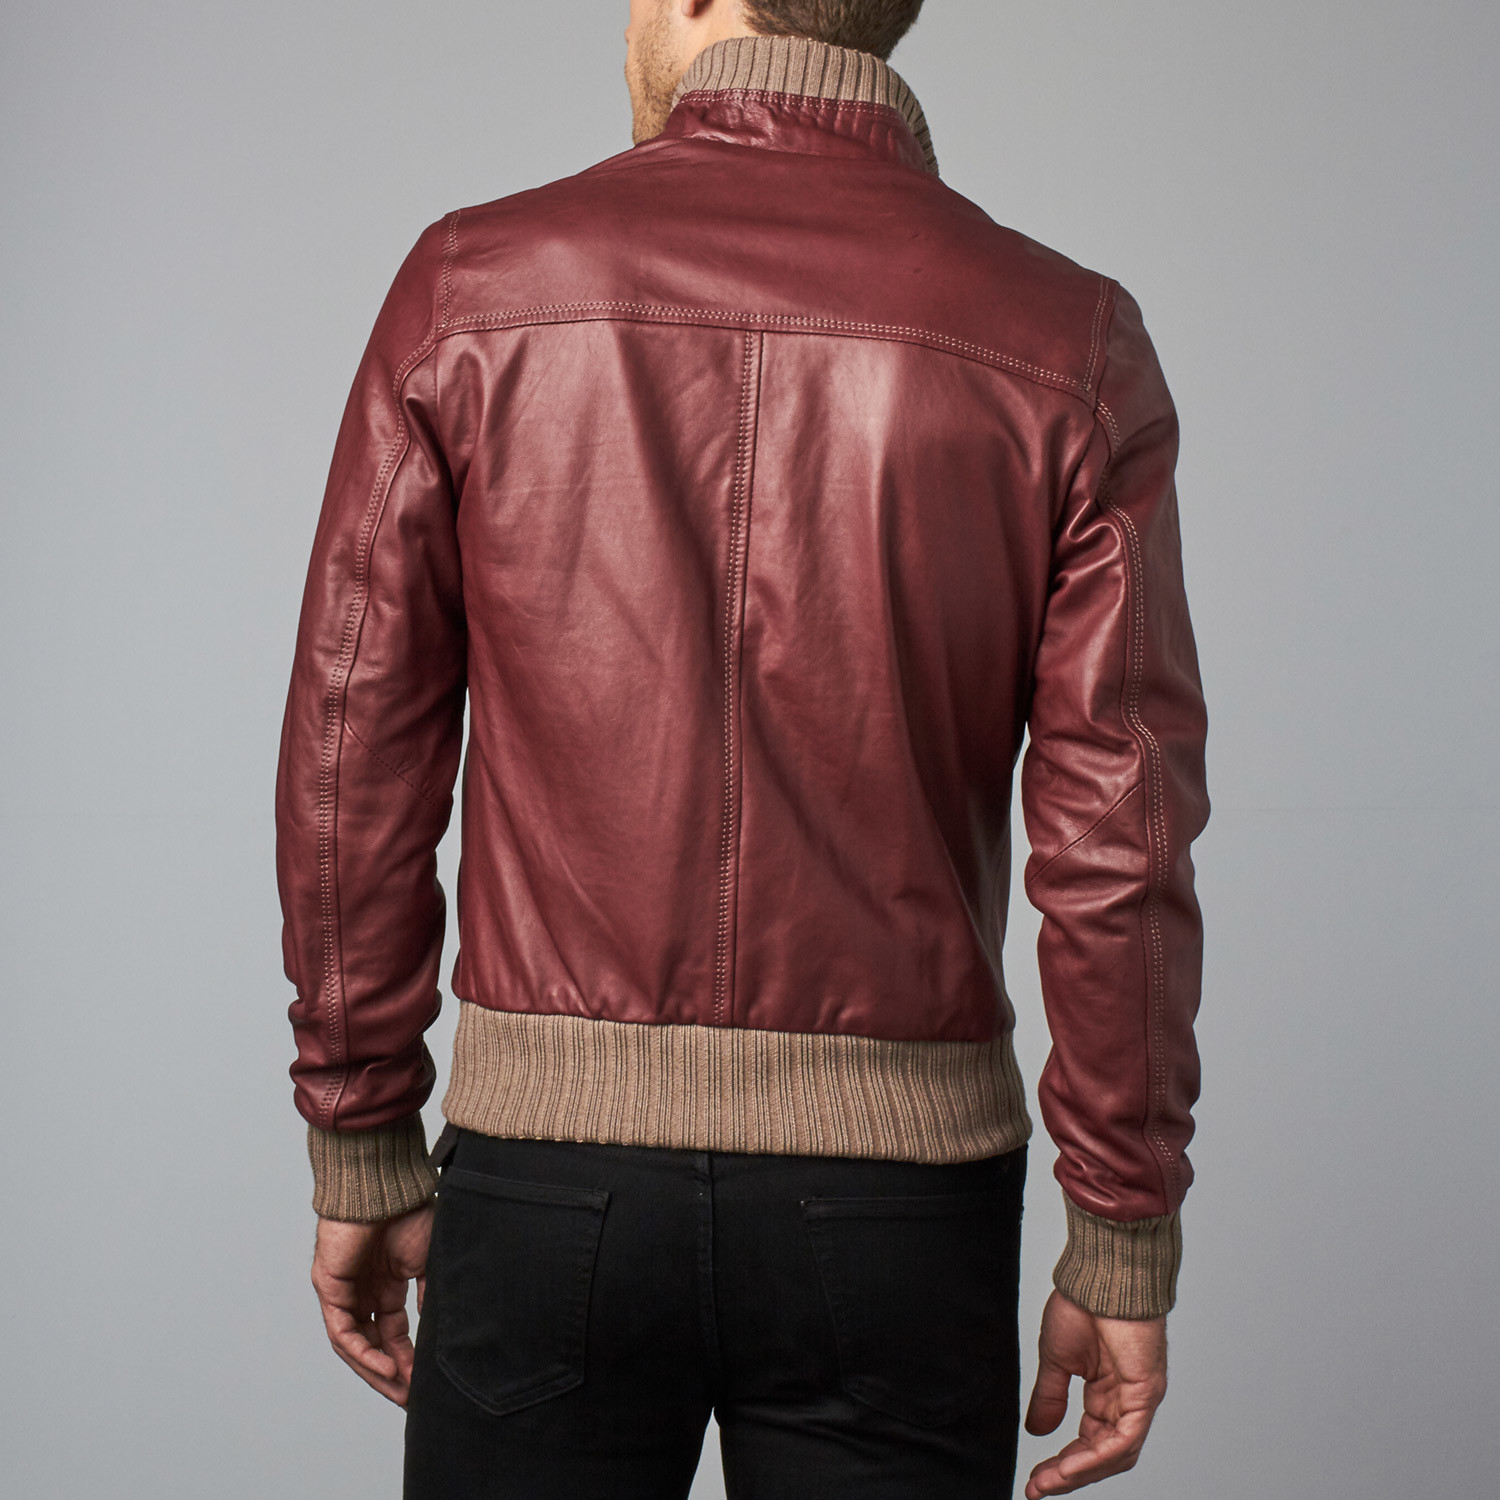 6f06f439c8c 107 Leather Bomber Jacket    Red Purple (Euro  50) - D Arienzo ...